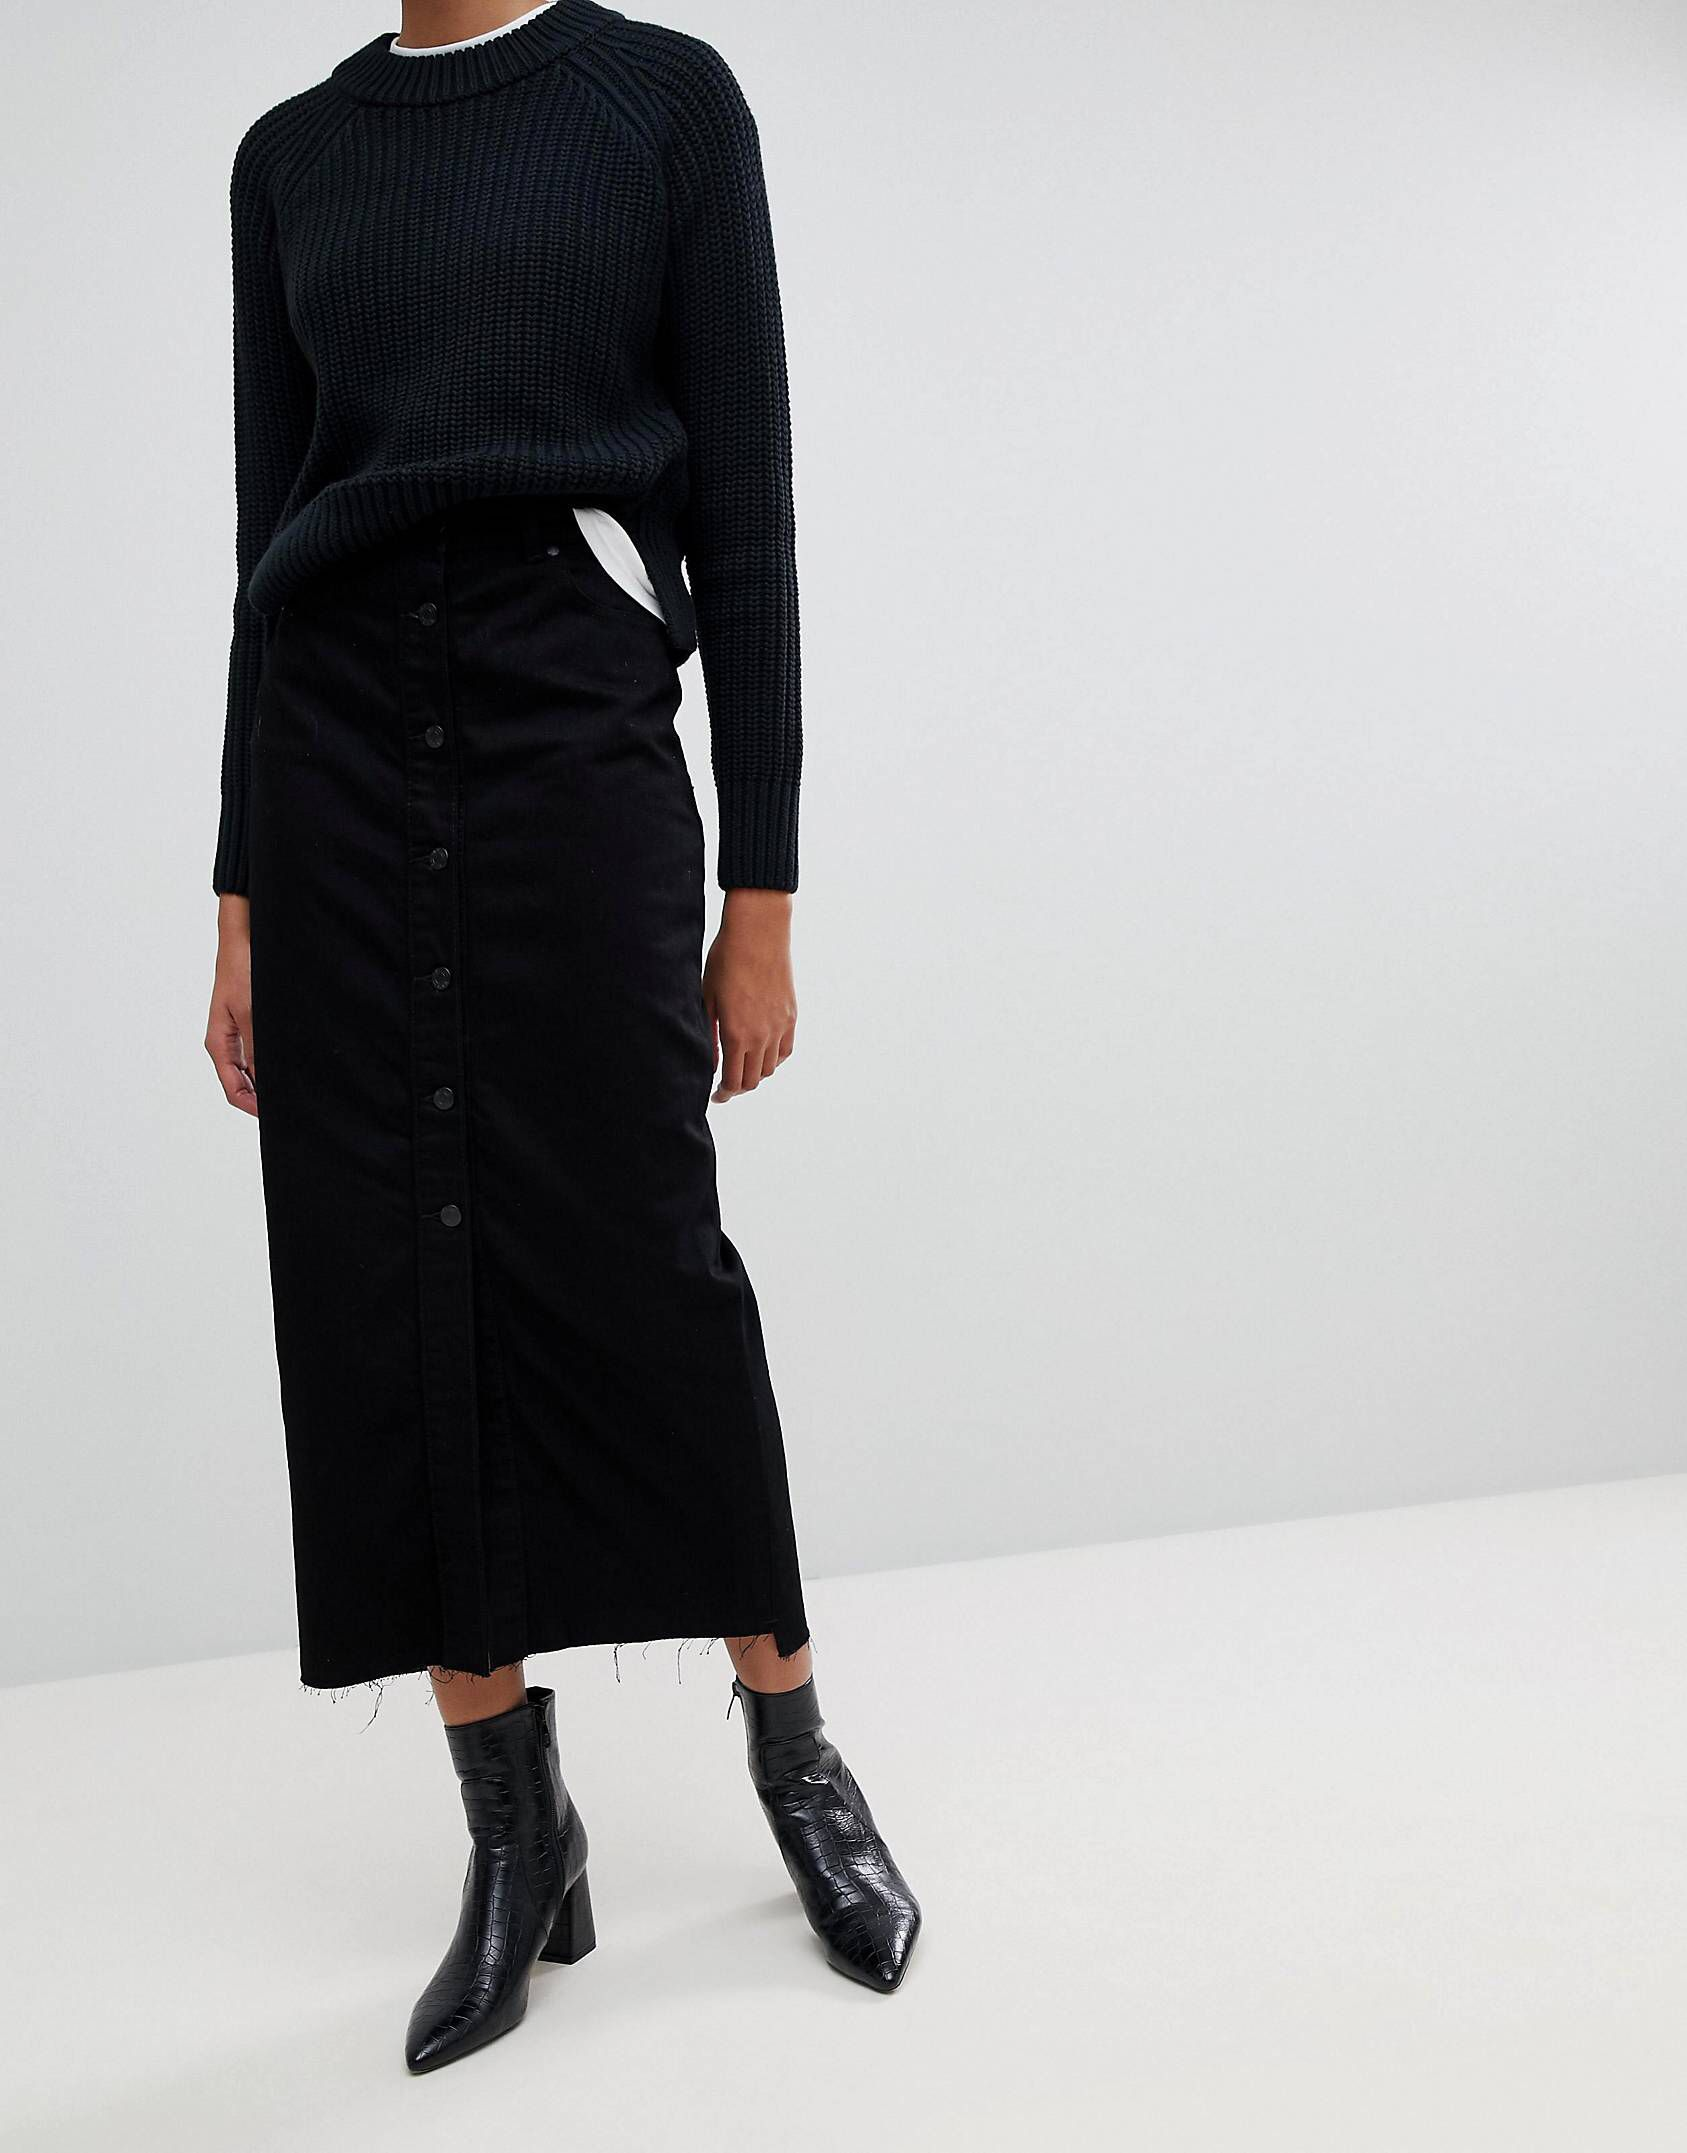 Pay With Paypal Online Venla Step Hem Button Front Maxi Skirt - Black Dr. Denim With Credit Card Cheap Online Clearance Big Sale How Much Online TkIypd0eB